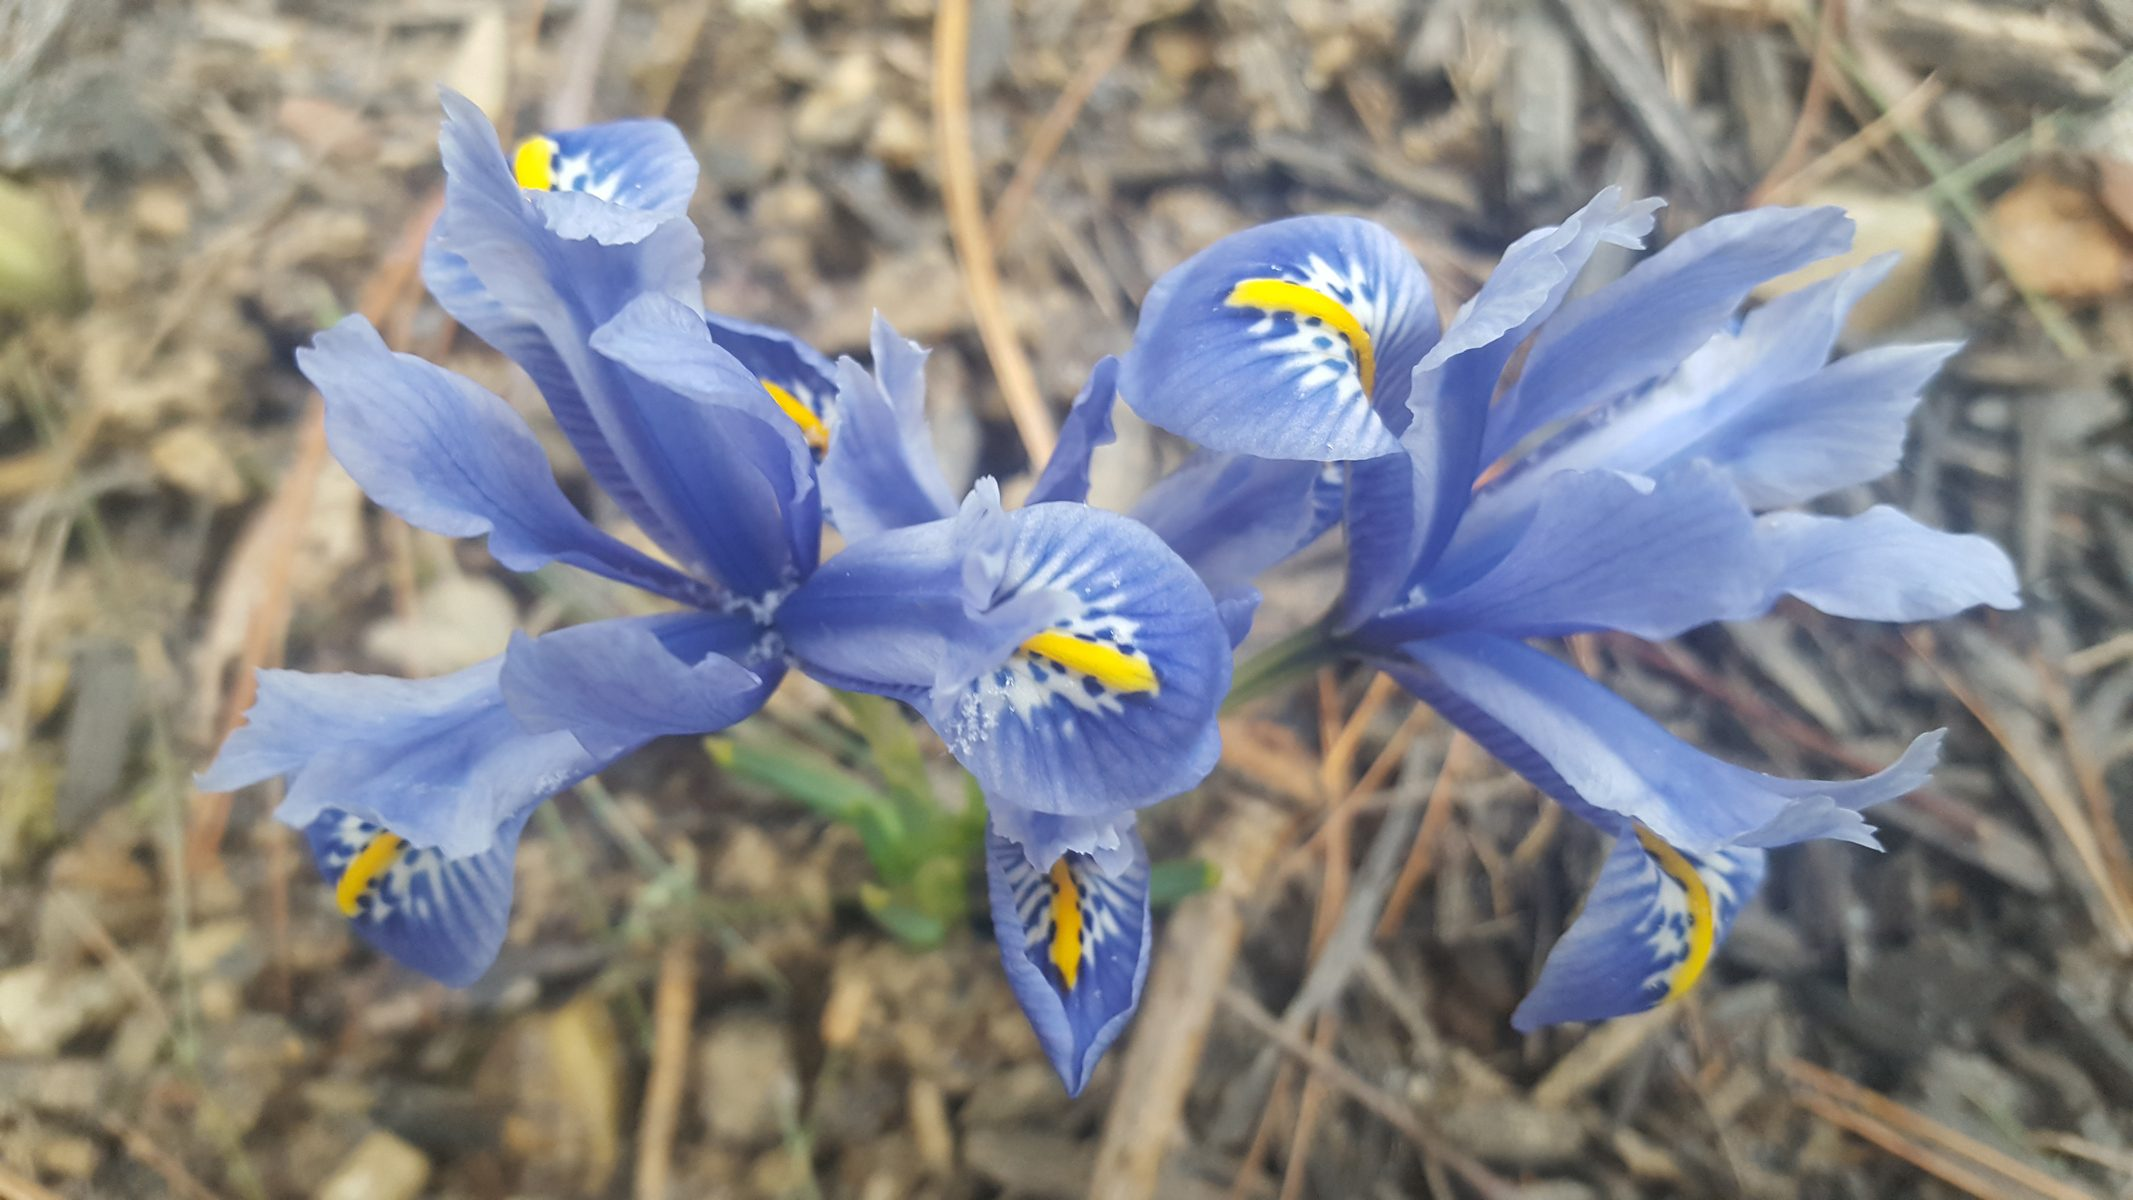 PLANT SPOTLIGHT: The Crocus